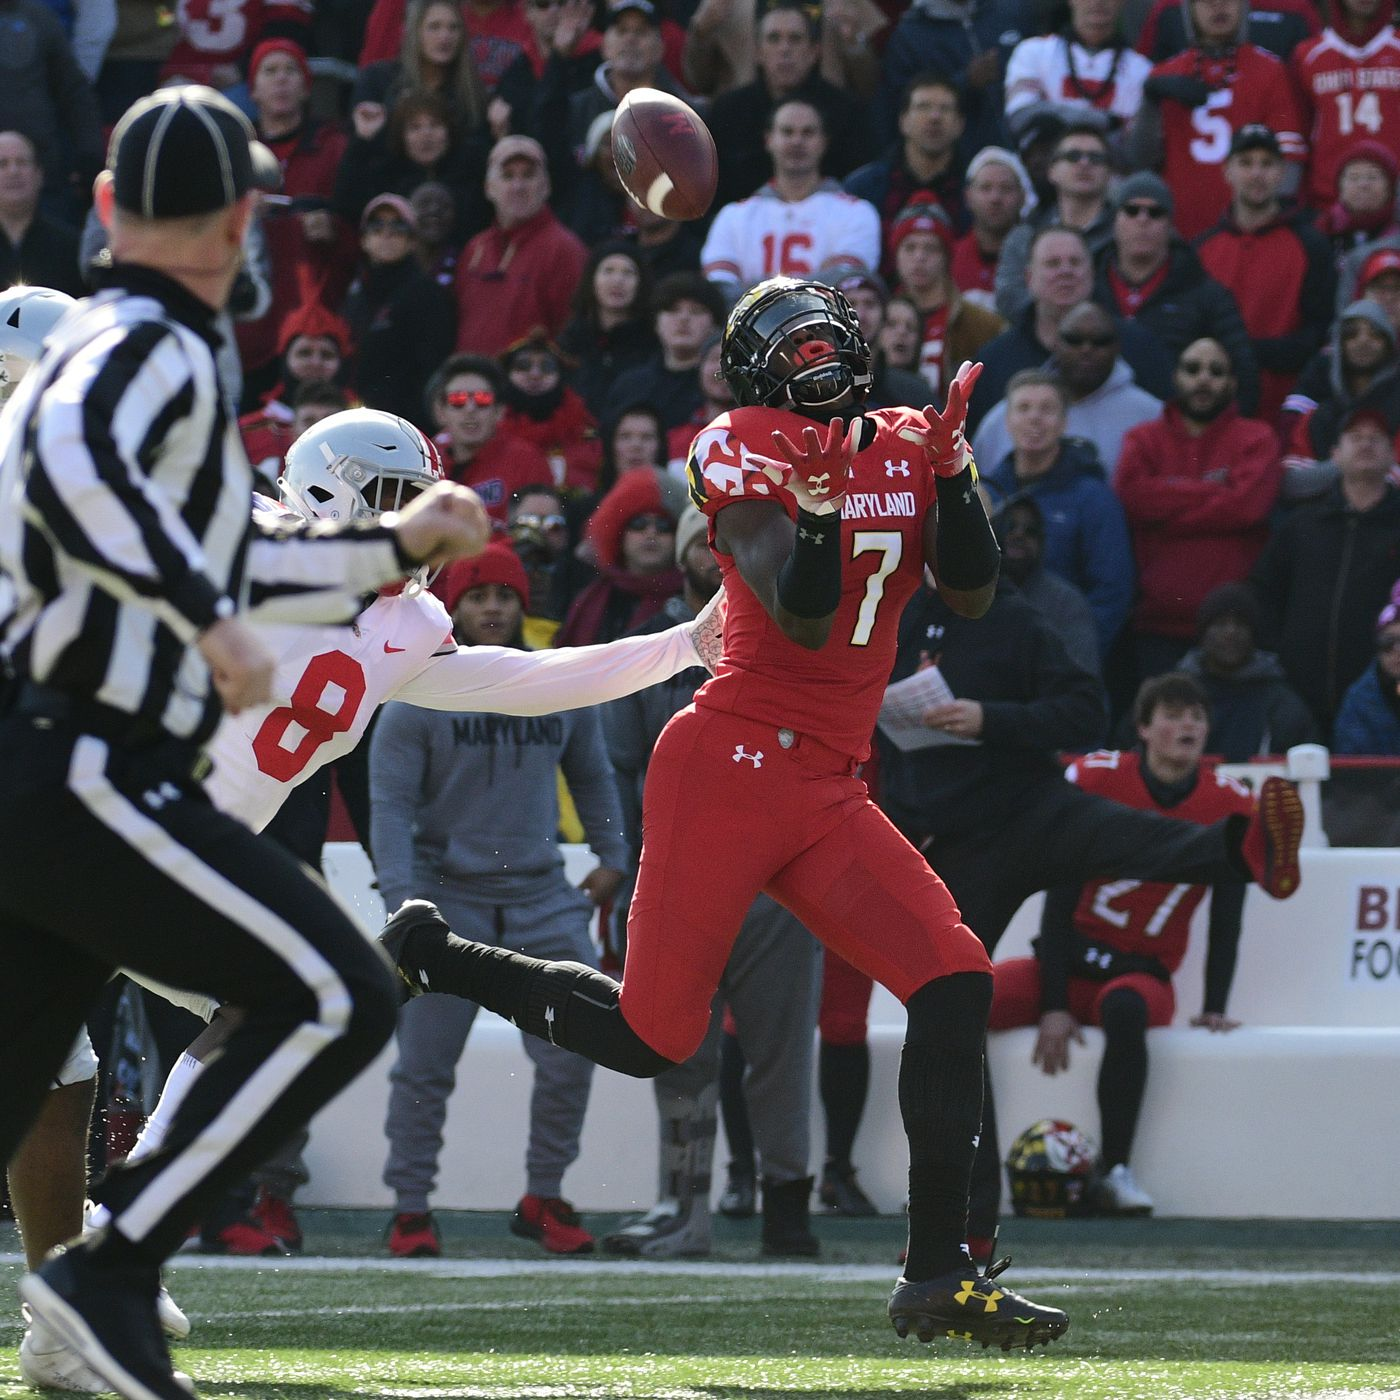 Maryland football enters 2019 with a talented but inexperienced